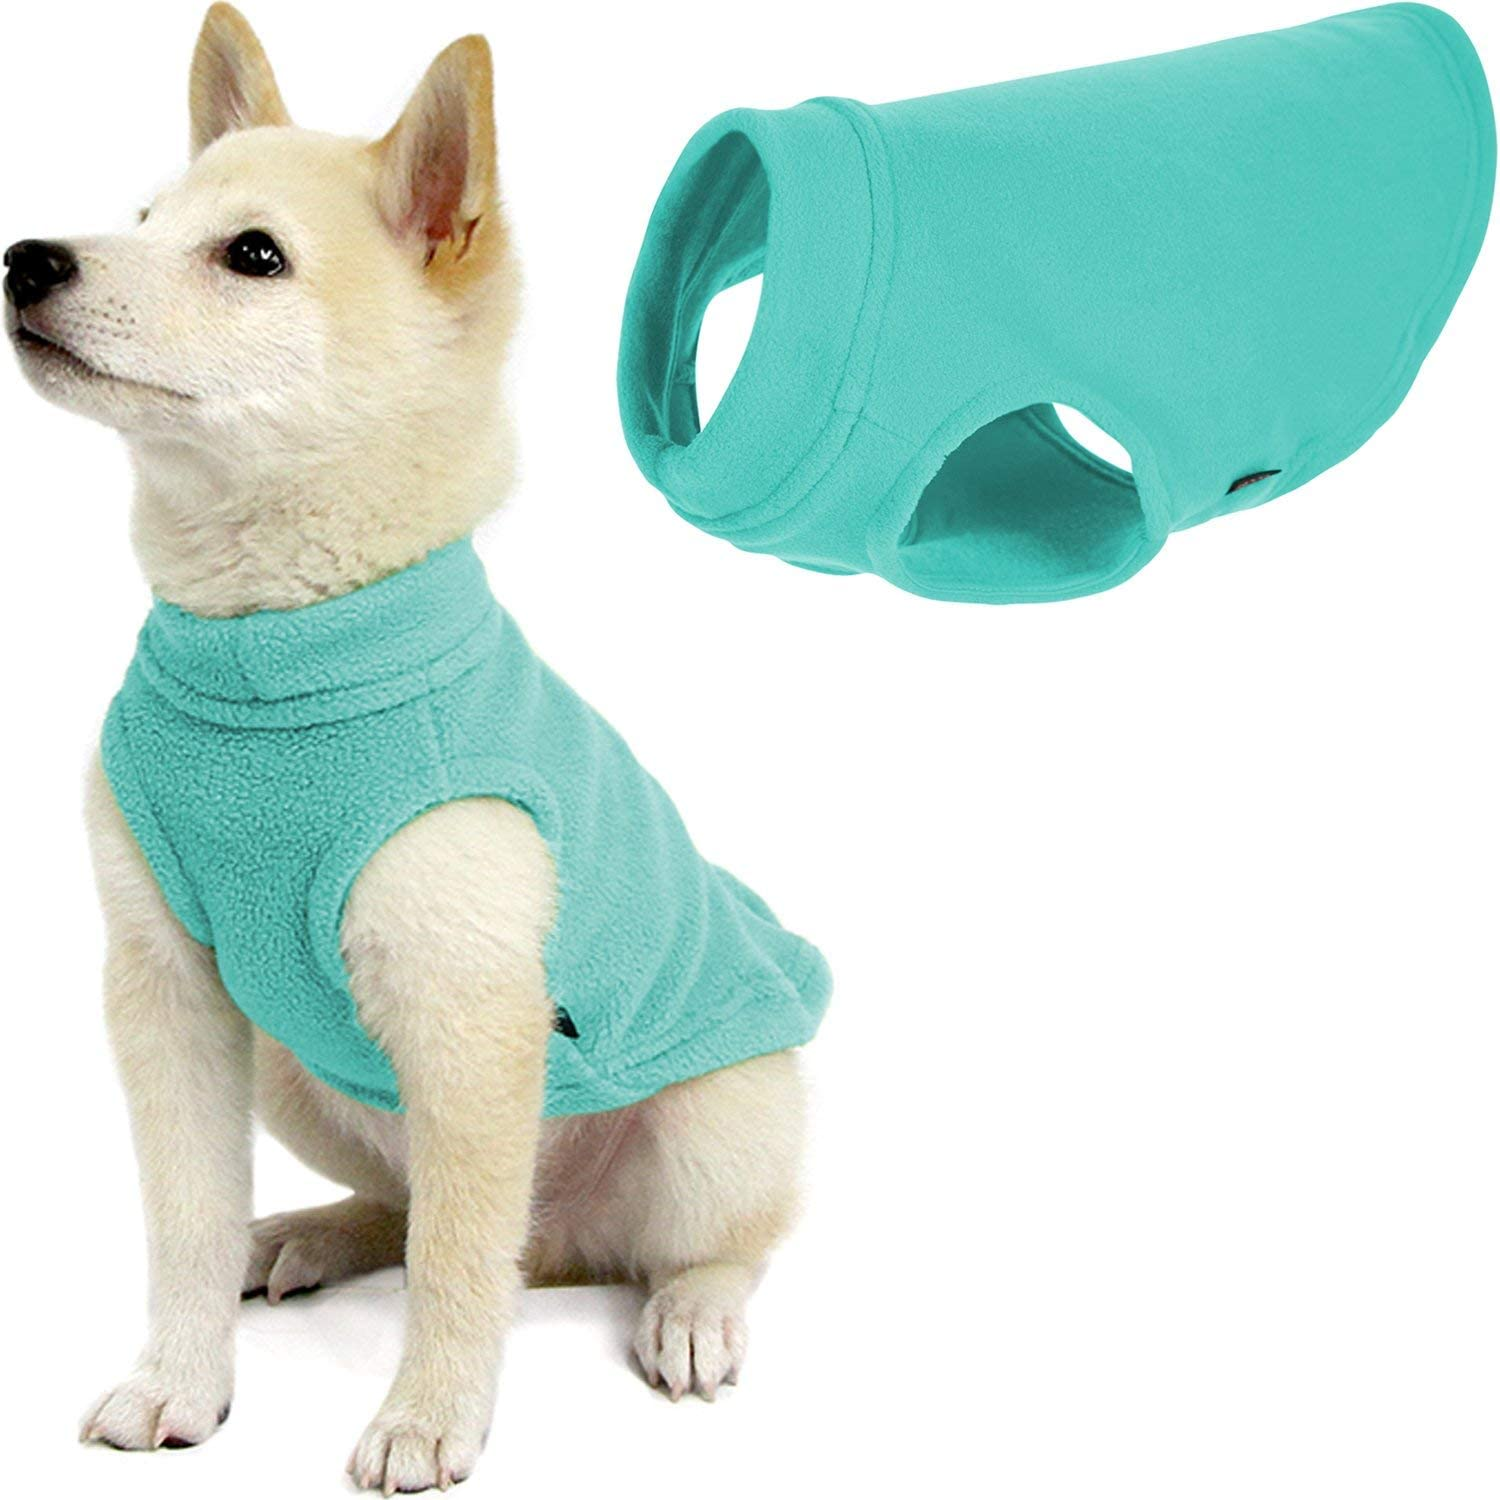 Gooby Stretch Fleece Vest Dog - Warm Sweater Outlet SALE Pullover Free Shipping Cheap Bargain Gift